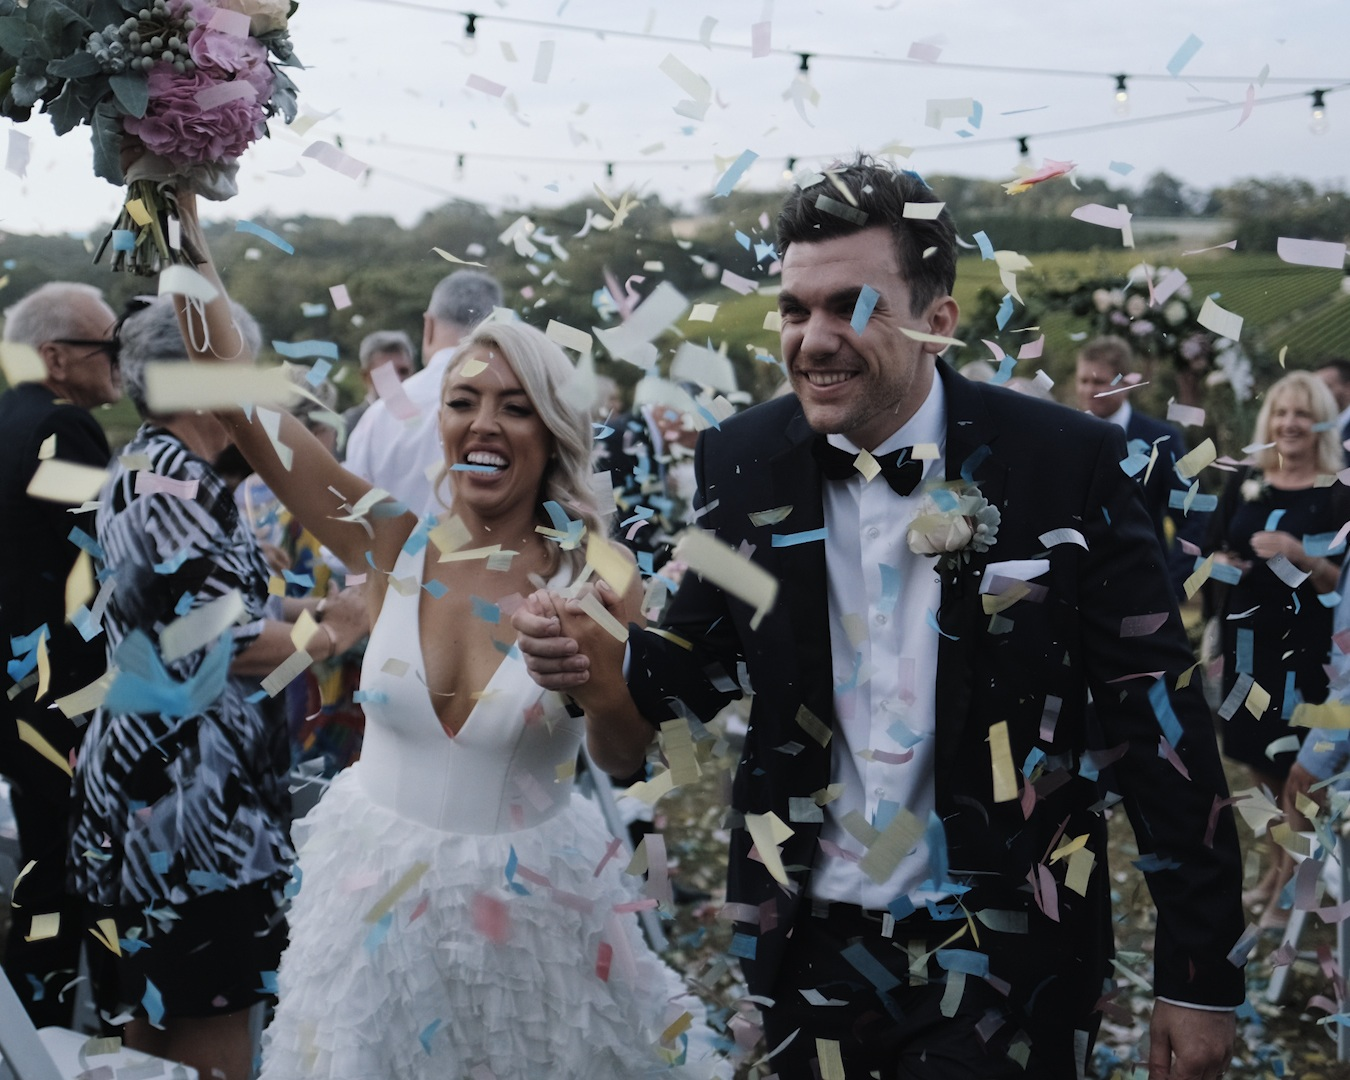 WHO WE ARE - The story of your wedding day will be one of the most precious of your lifetime. That's why it's such a privilege for us to bring these stories to life. So far, we've captured hundreds of weddings so we know what works and what doesn't. In fact, one of our videos won the Gold Award at the AIPP Video Producer awards and our rad clients give us rave reviews on Facebook.Most importantly, we know that every story is different – and therefore every wedding film we make is different too. By 'different' we don't just mean grabbing a random soundtrack and calling it done, we're talking about an exclusively handcrafted, premium approach from beginning to end. We get to know you and your quirks in preparation, capture the tiny beautiful details on your day, find the perfect music to complement your footage, and bring it all together in a blow-your-socks-off video that is undisputedly, remarkably 'you.'Telling your story, in your way, is what we do best.